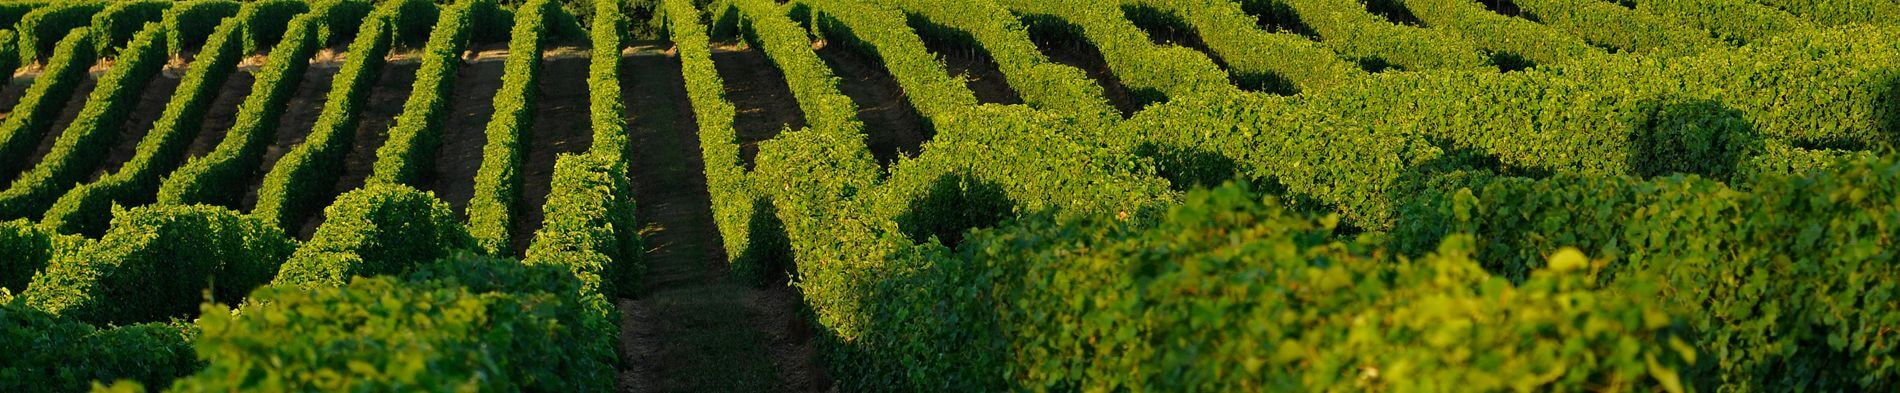 The beautiful Tariquet vineyards of Gascony, South-West France - http://www.tariquet.com/